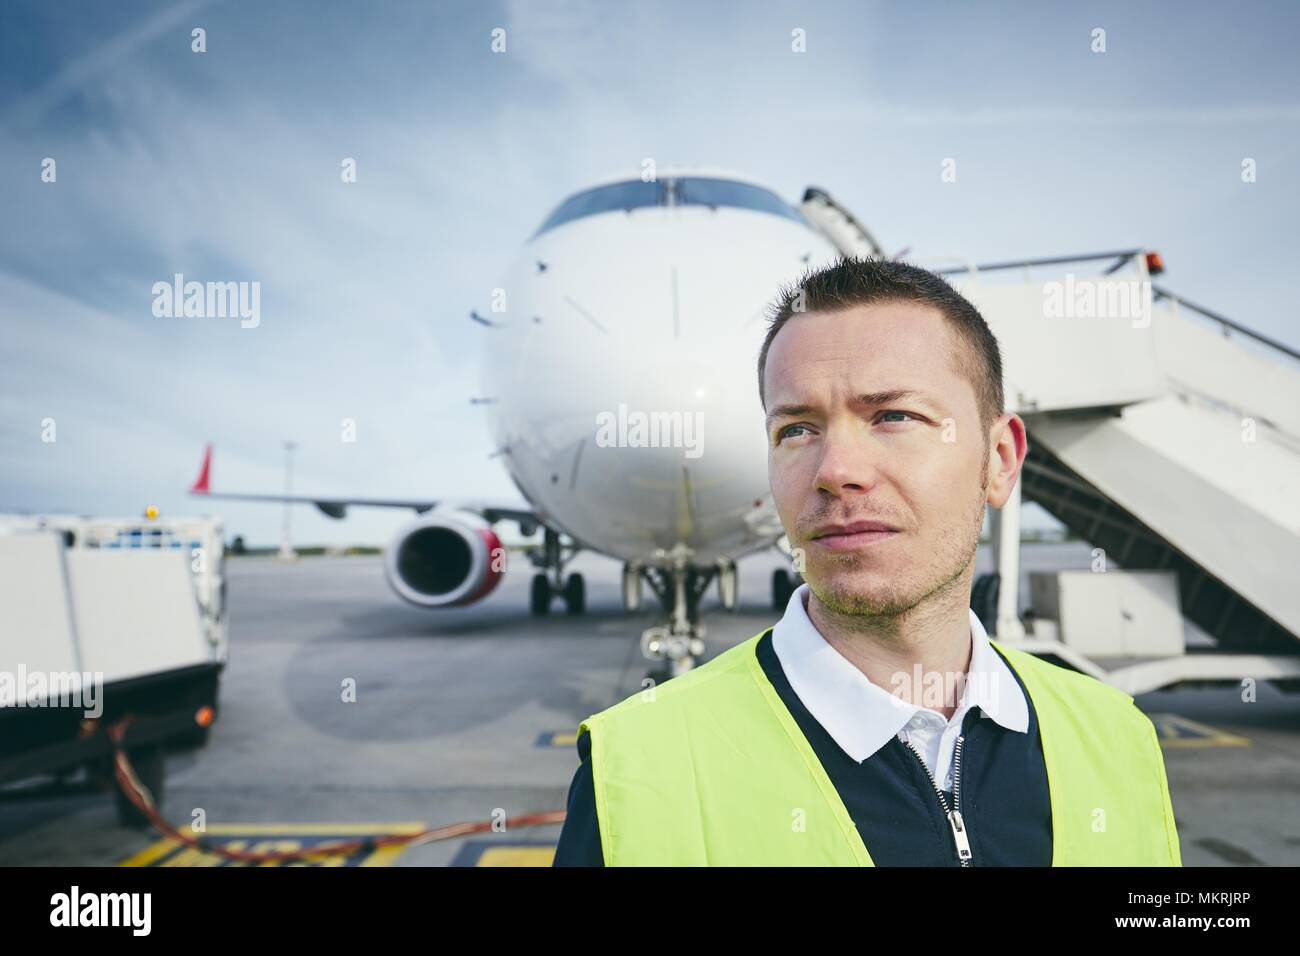 Member ground crew worker at the airport in front of the airplane. - Stock Image